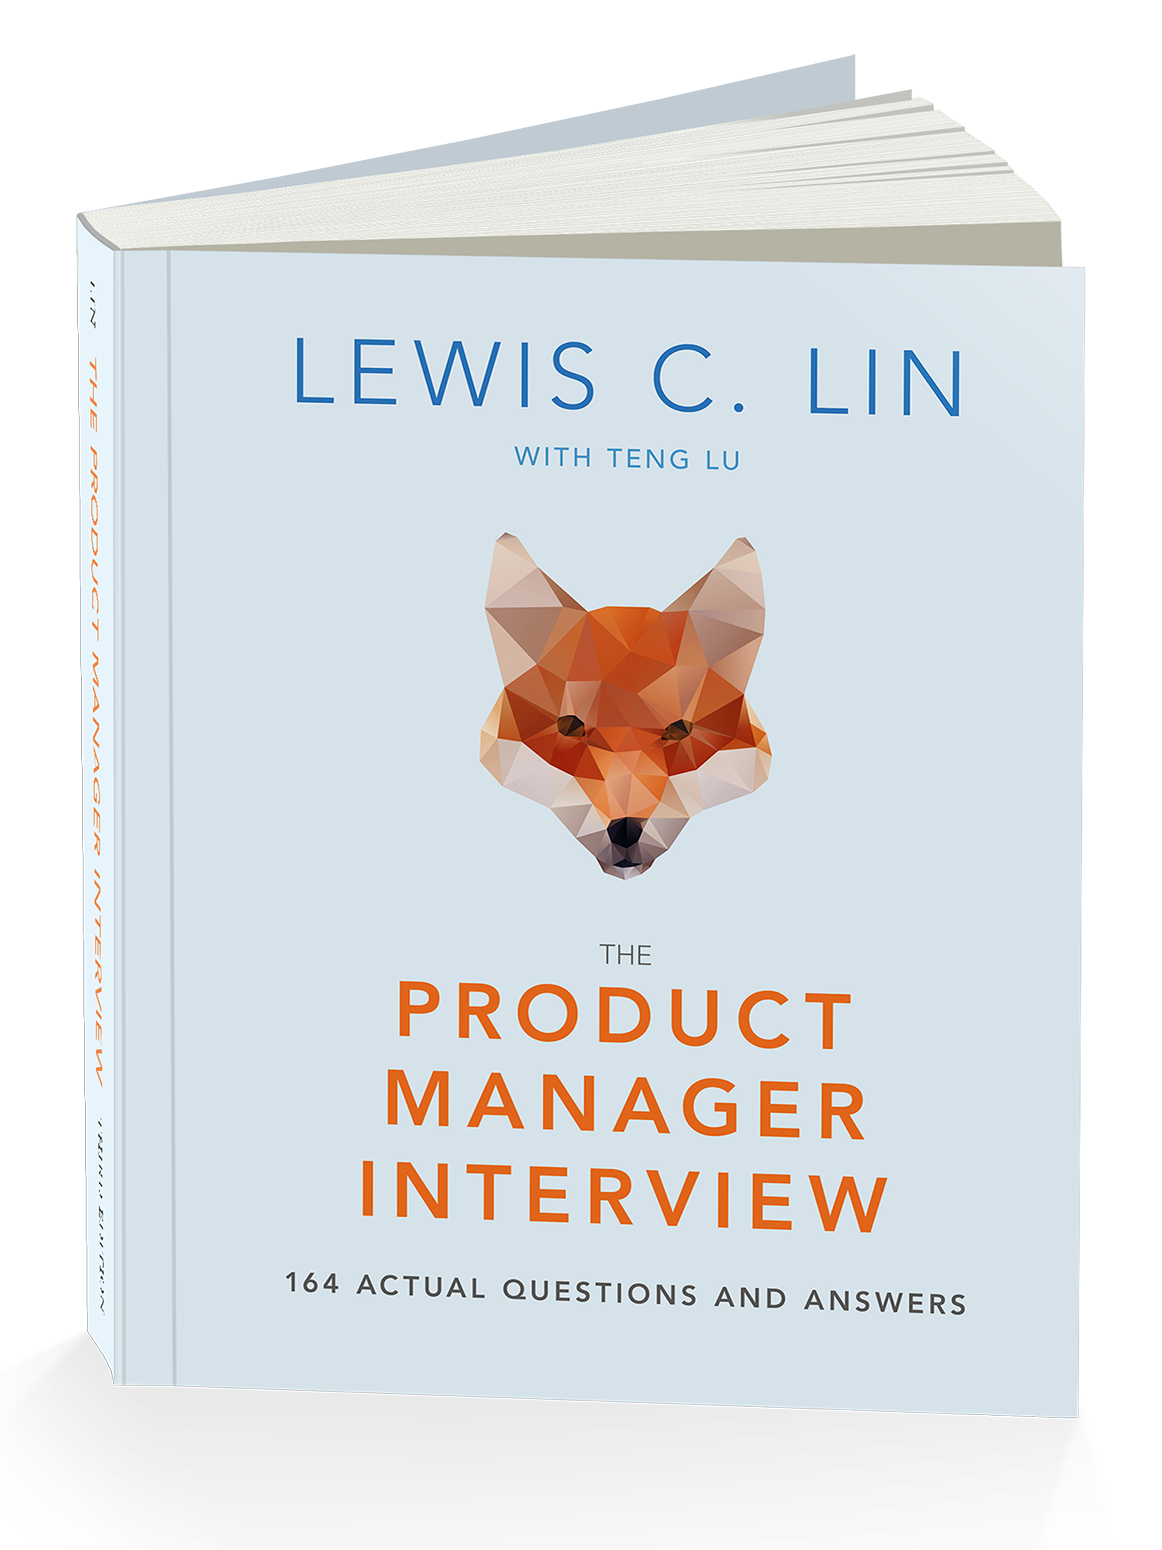 the-product-manager-interview-book-lewis-c-lin